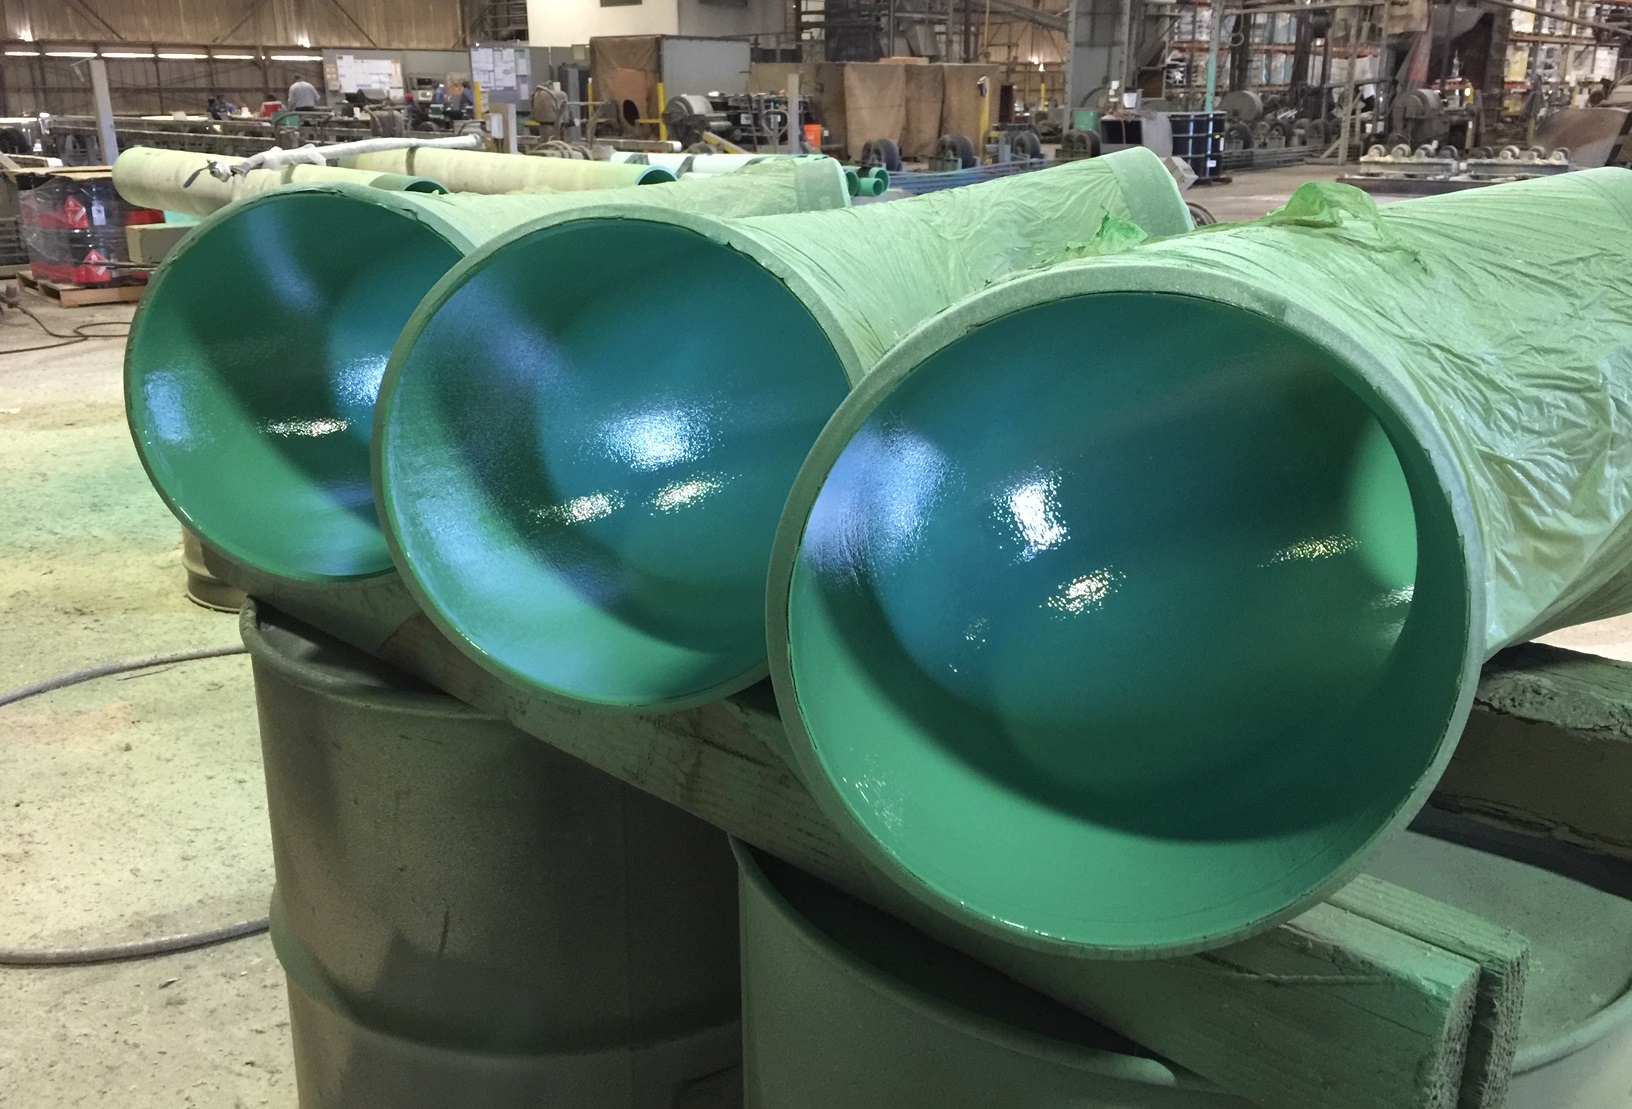 ChemTemp Epoxy Novolac- Tank Liner, Internal Pipe Coating, Secondary Containment Coating, CUI Coating Hybrid Epoxy Novolac Liner Coating Chemically Resistant Epoxy Coating Abrasion Resistant Epoxy Novolac Coating - Liner & DTM PIG Applied In-Situ Epoxy Coating In-Situ Epoxy Novolac Coating